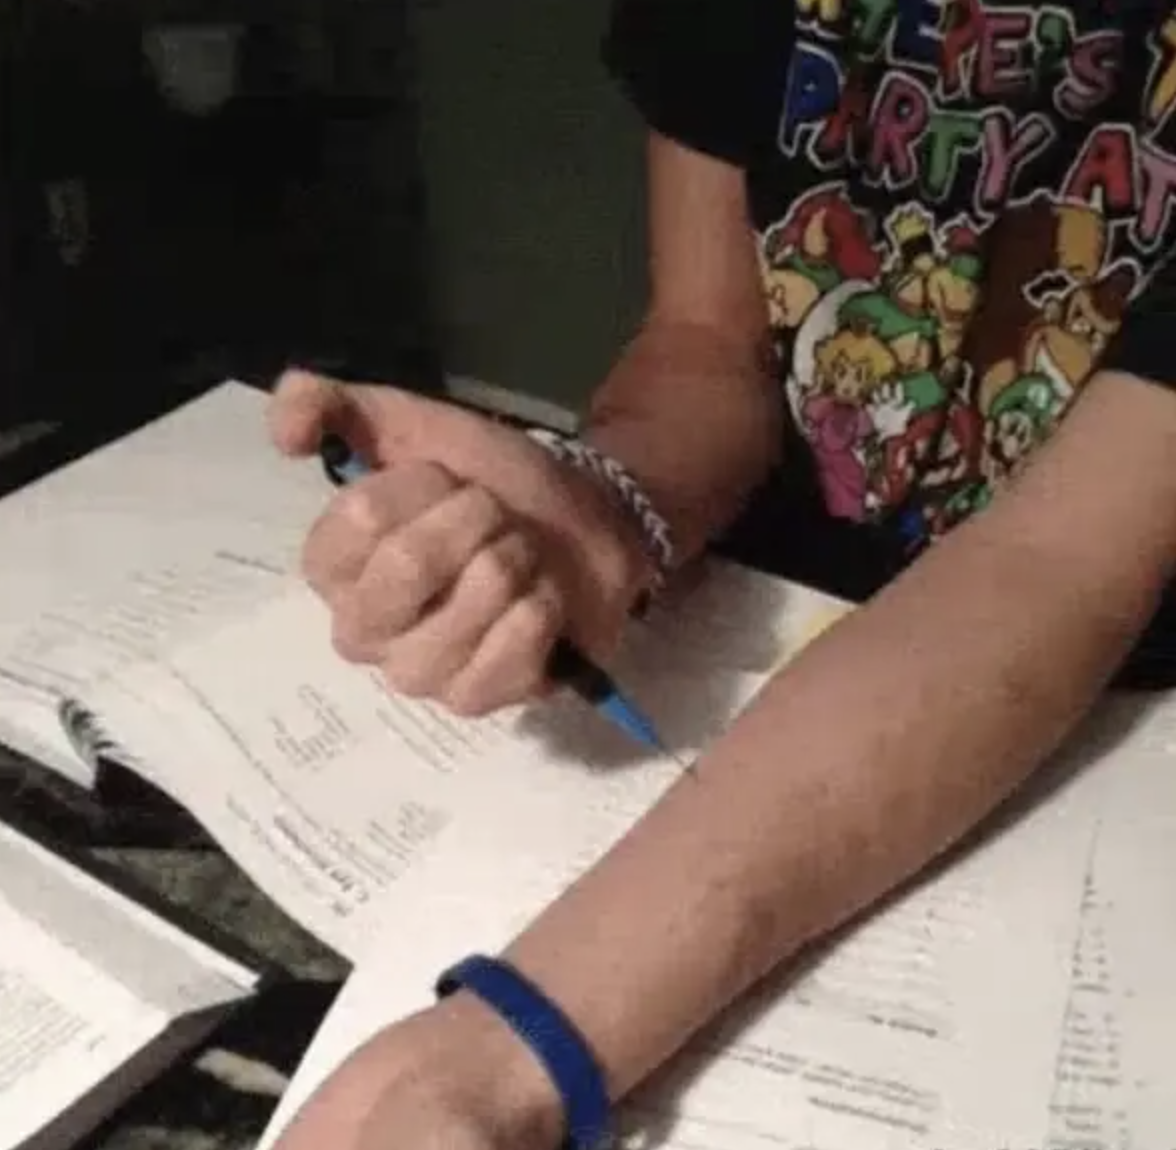 Kid stabbing himself with a mechanical pencil